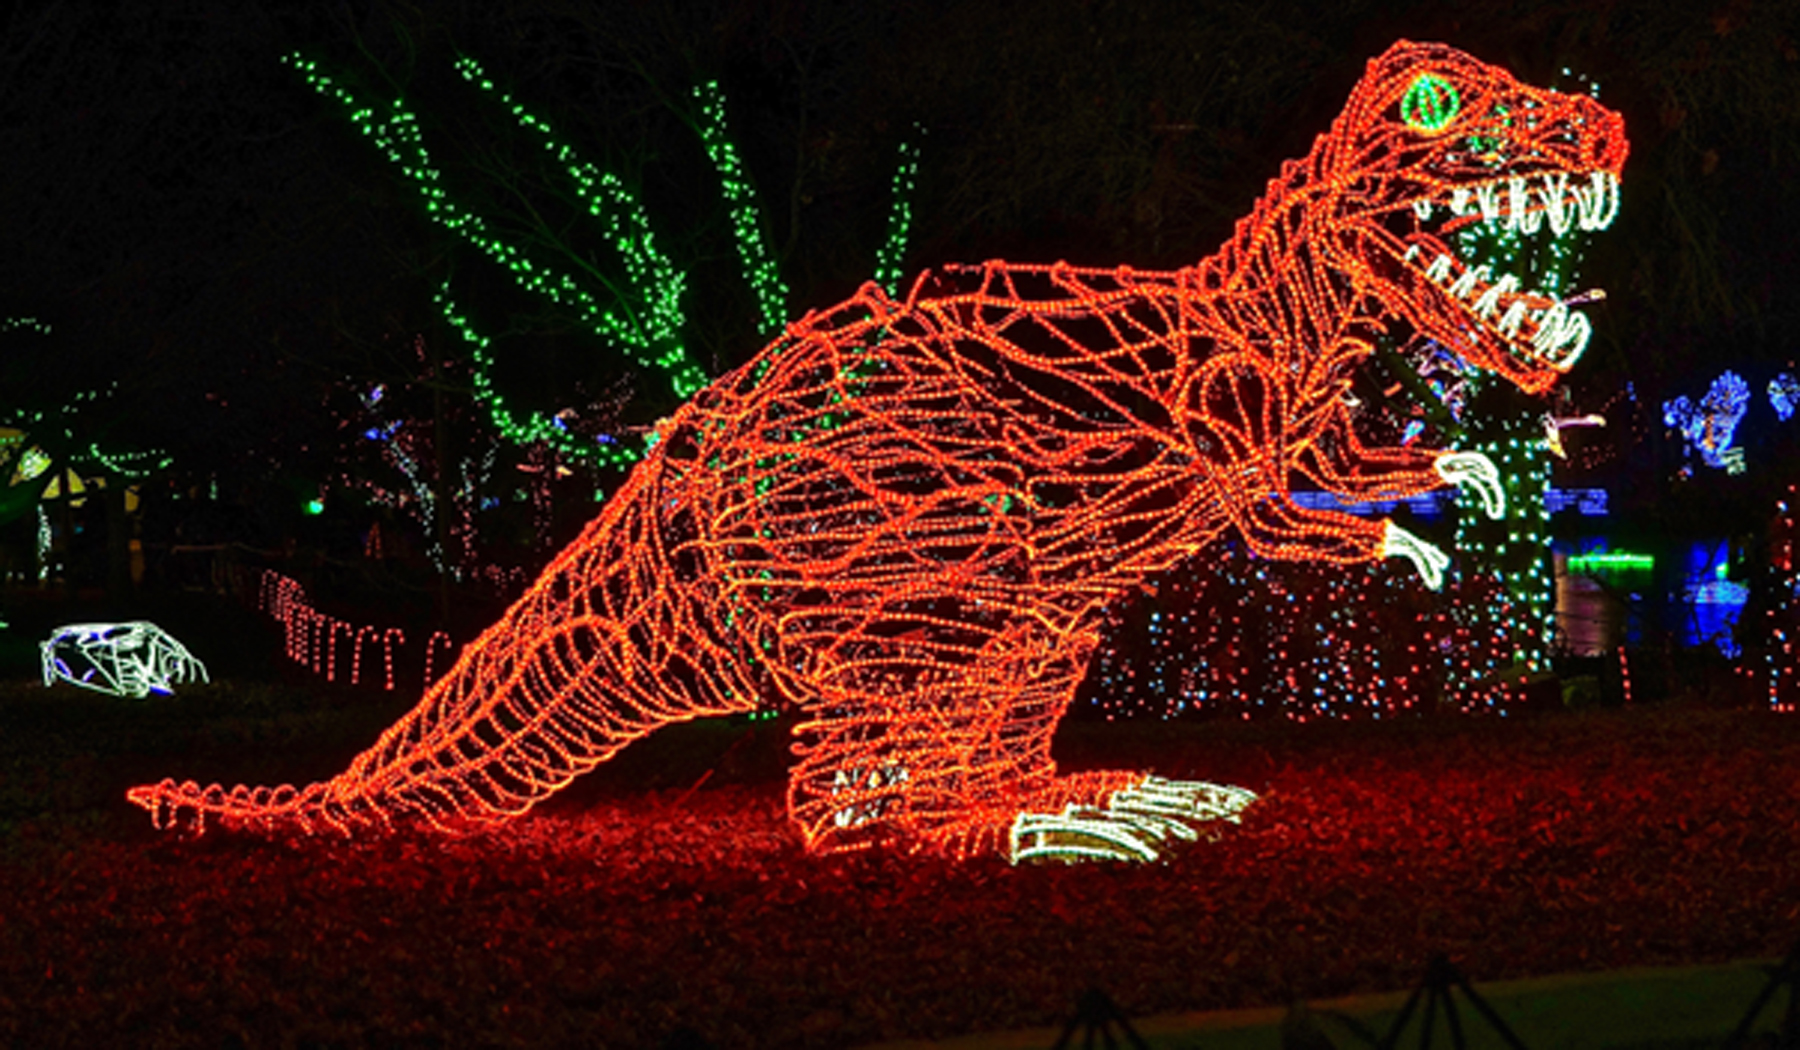 (191222) -- ALBUQUERQUE (U.S.), Dec. 22, 2019 (Xinhua) -- Photo taken on Dec. 21, 2019 shows an illuminated dinosaur during River of Lights at ABQ BioPark Botanic Garden in Albuquerque, New Mexico, the United States. The annual walk-through light show River of Lights, with millions of twinkling lights and nearly 600 dazzling holiday displays, stages here during the month of December. (Photo by Richard Lakin/Xinhua)